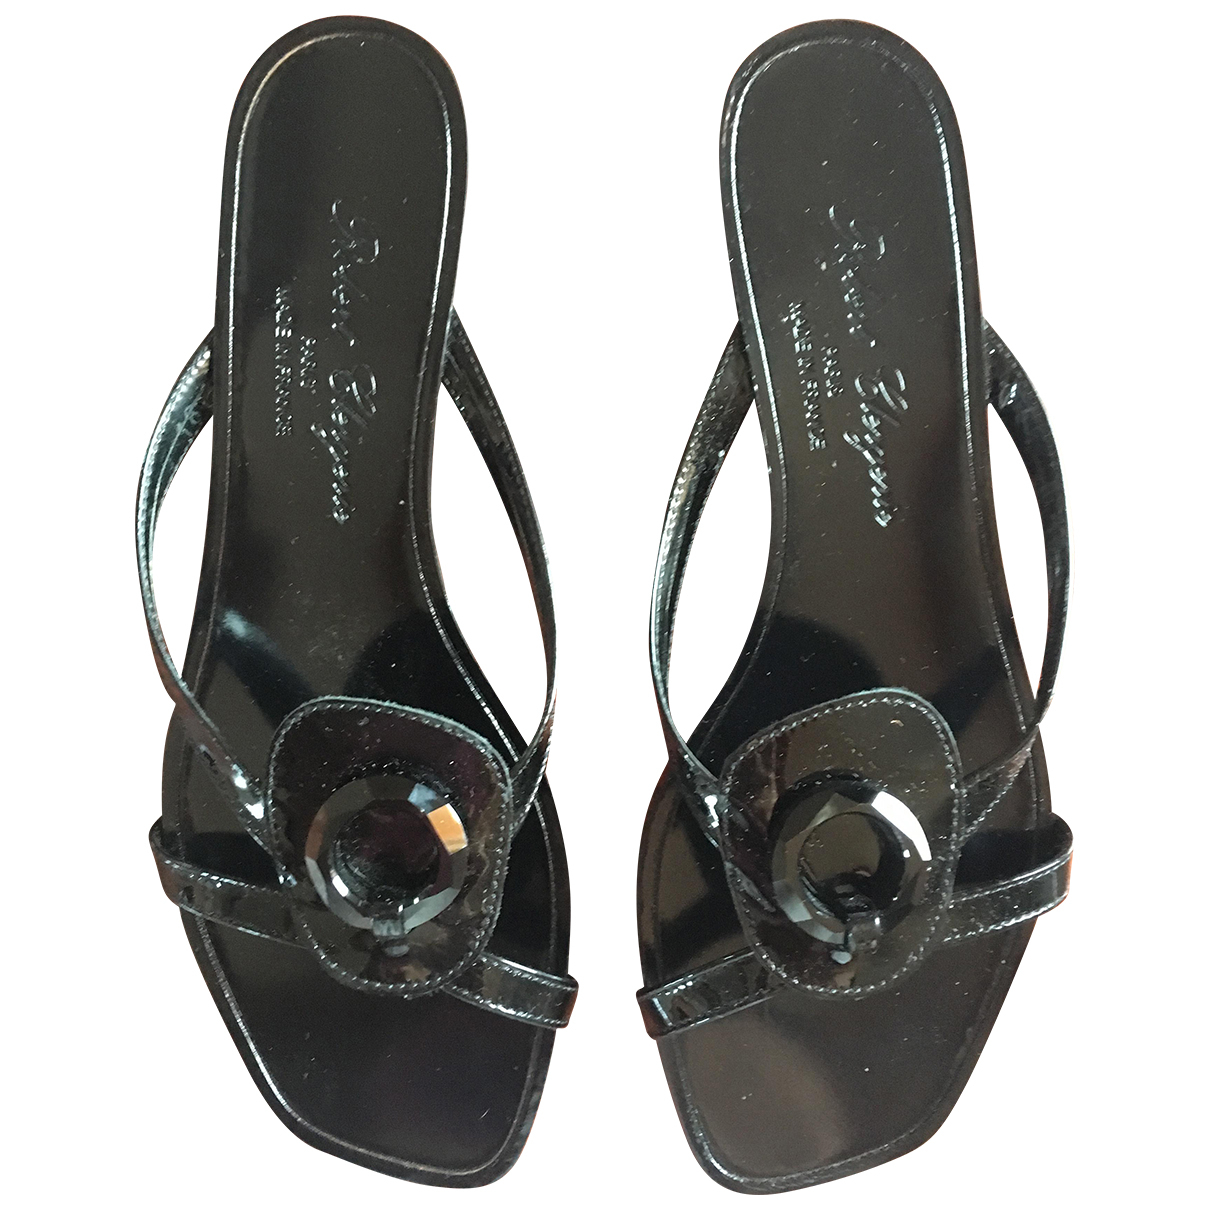 Robert Clergerie \N Black Patent leather Sandals for Women 37 EU